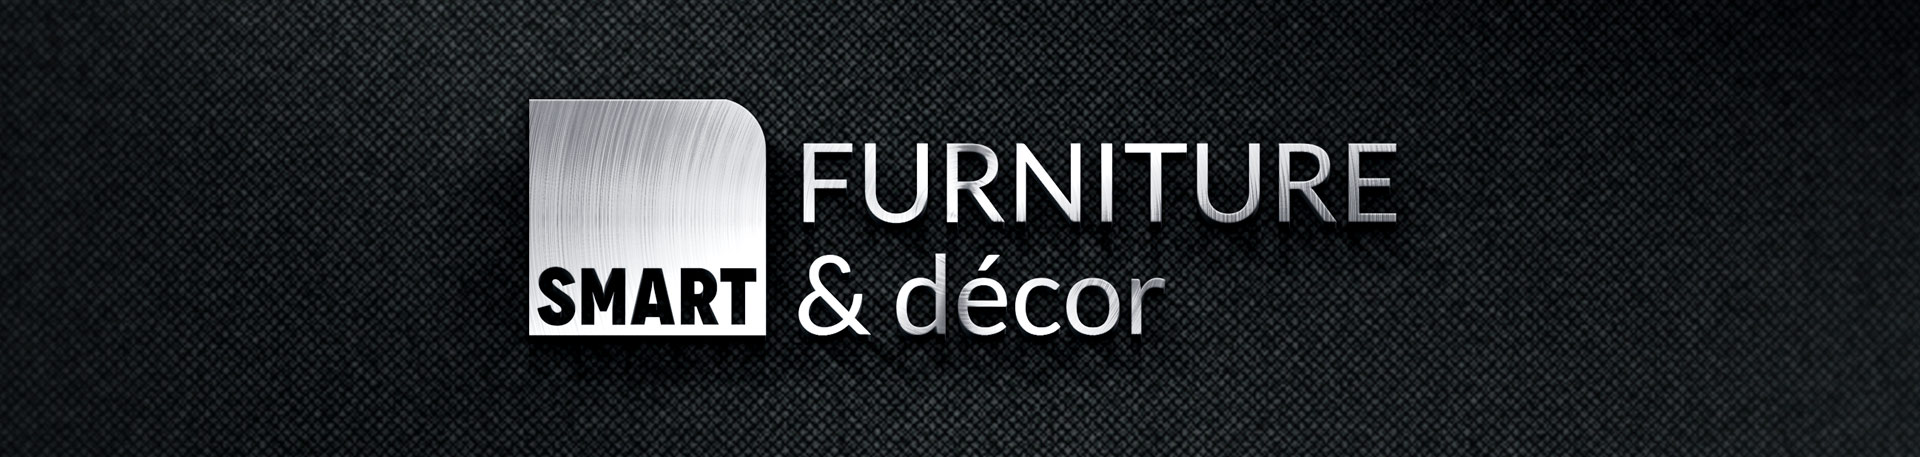 Smart Furniture - Sofa beds, sectionals, condo size european furniture, solid wood, bedroom, dinning, living room, hallway, murphy beds, office, décor, GTA Mississuga